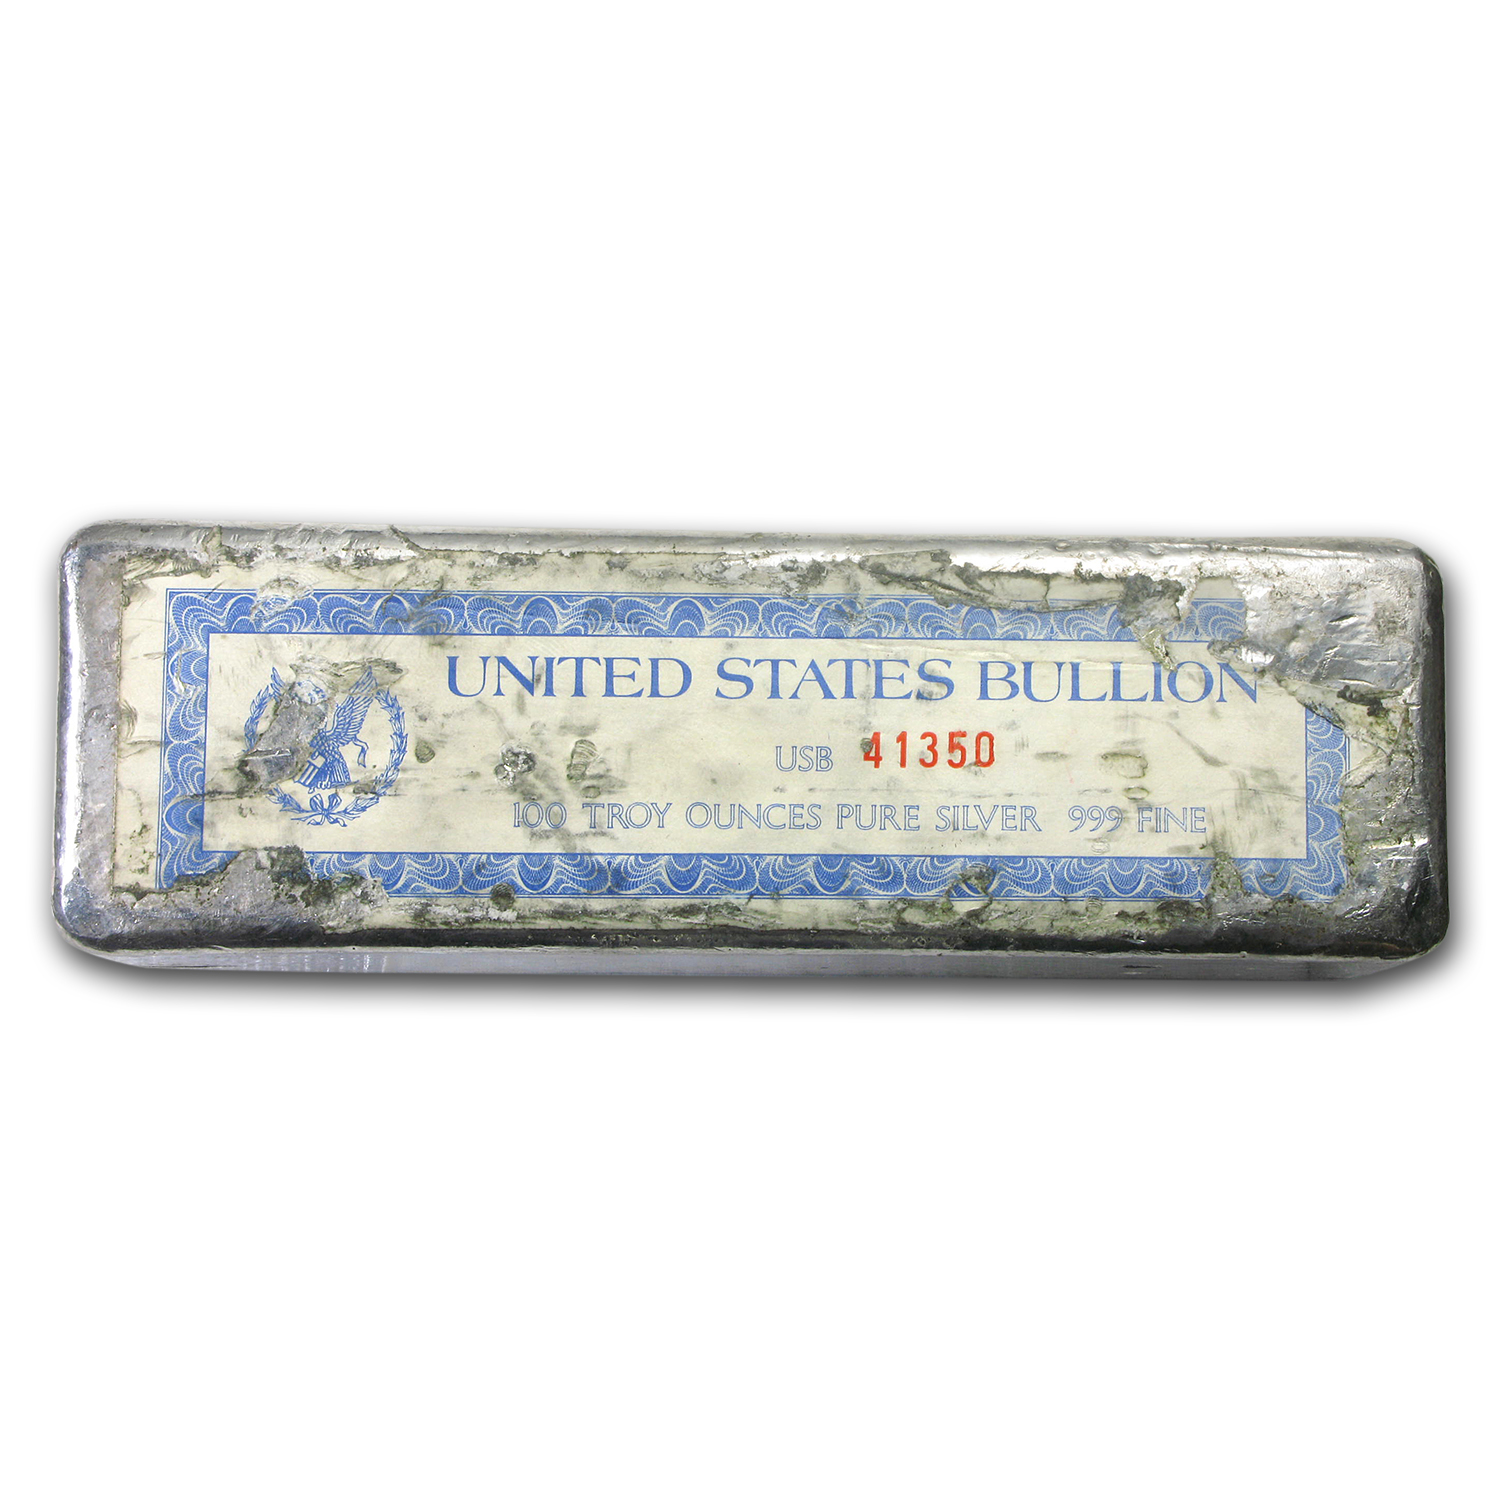 100 oz Silver Bars - Johnson Matthey & Mallory (Maple Leaf)